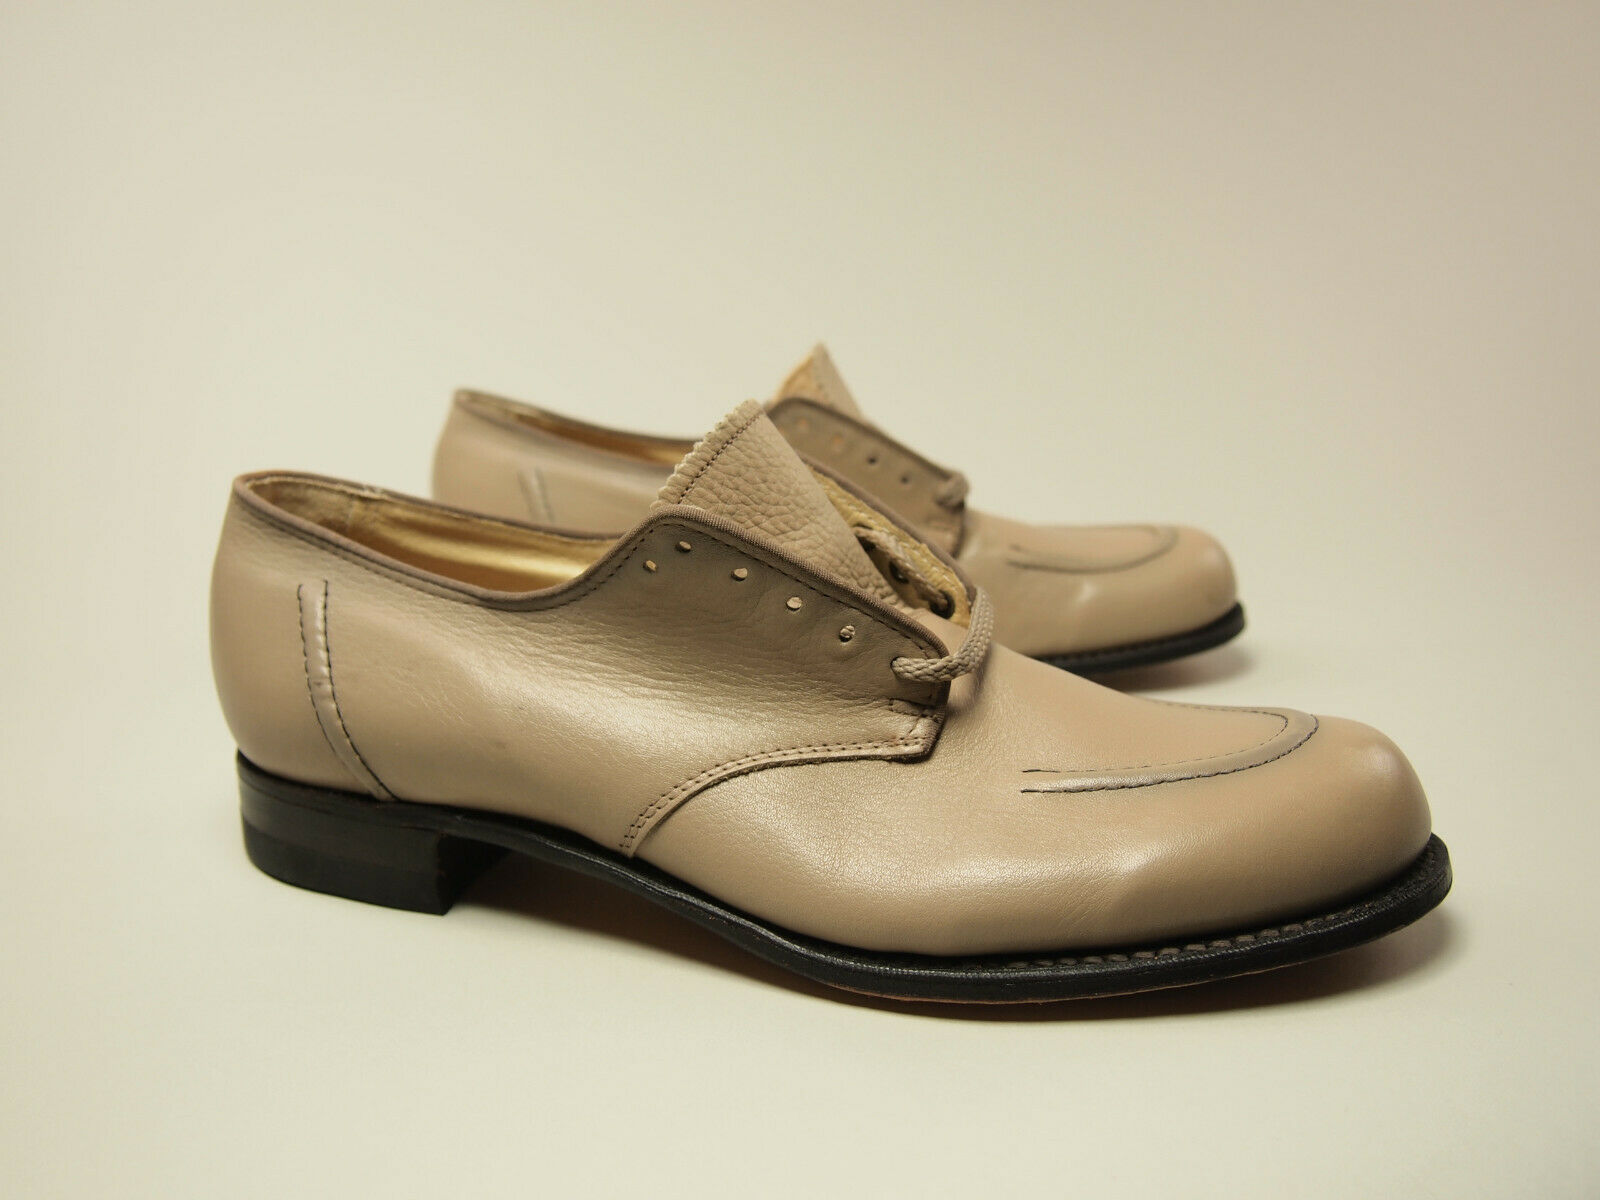 New  Vintage 1970s Taupe Leather Dress Oxfords 7.5 AA